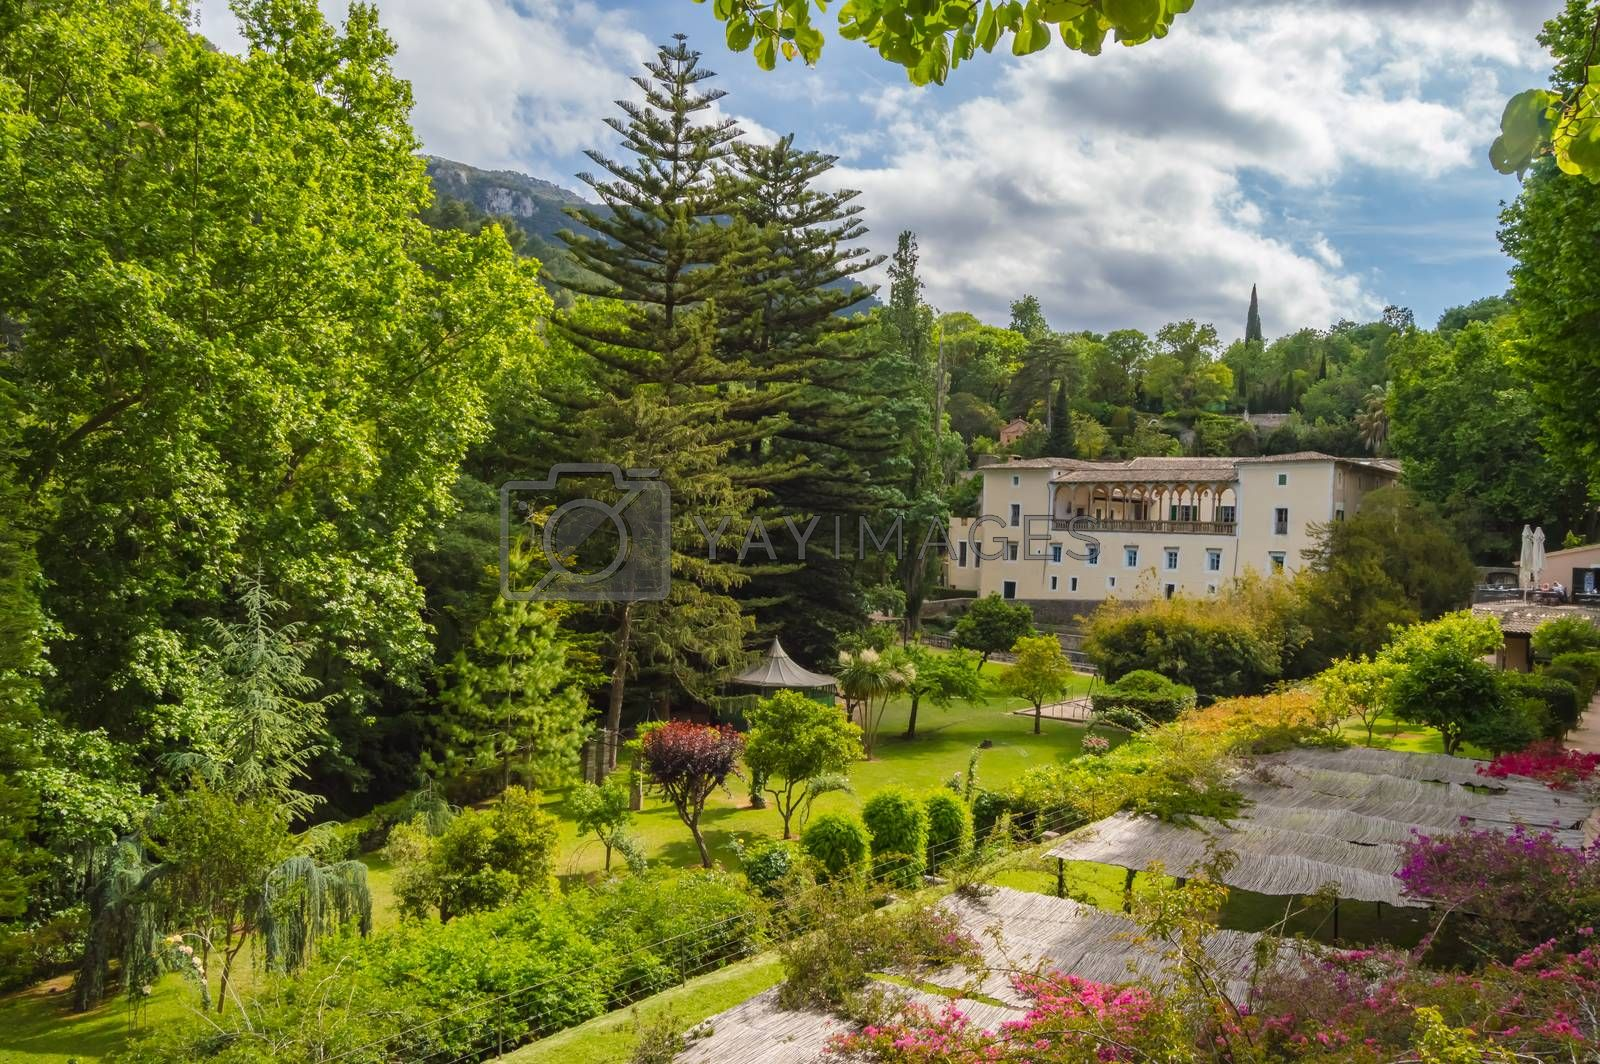 View of La Granja de Esporles the museum of tradition and histor by Philou1000